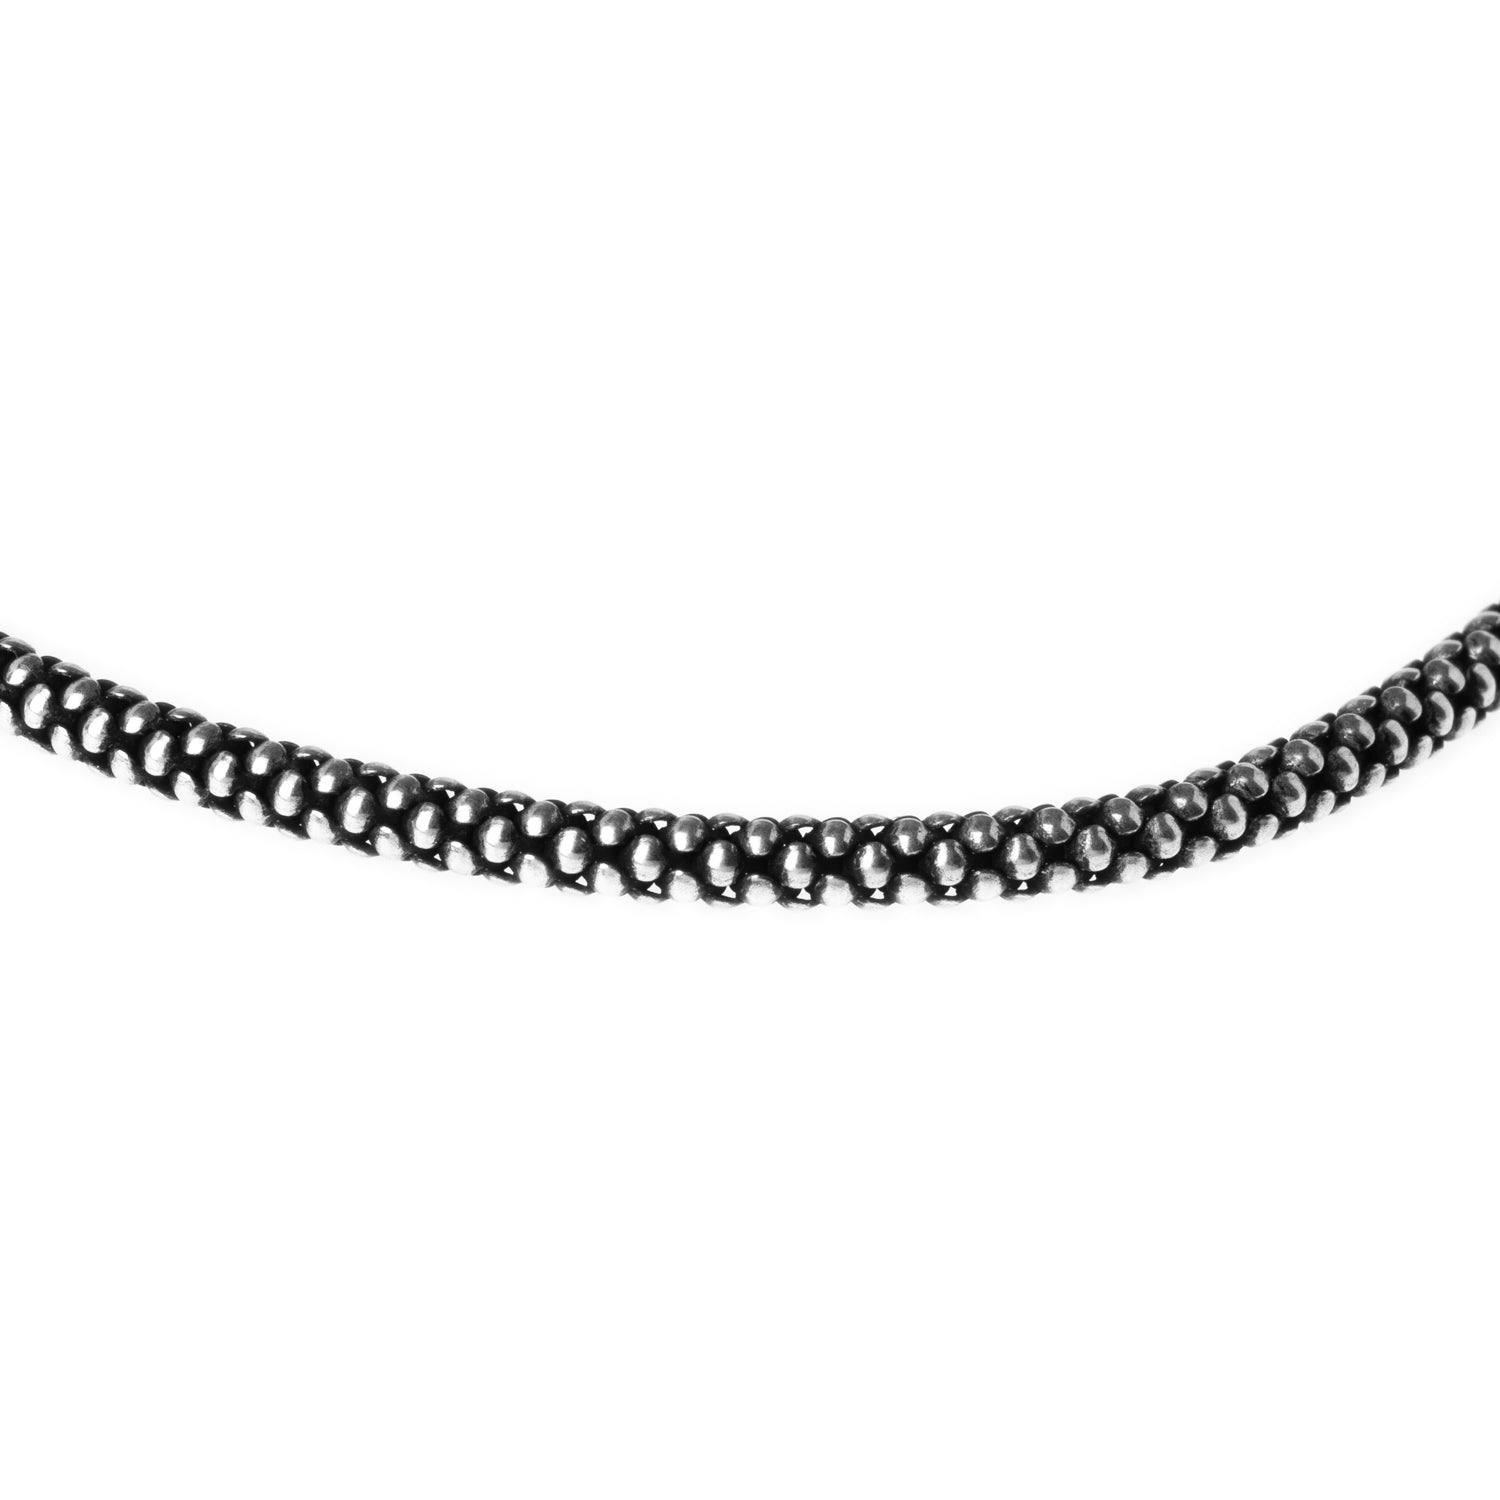 Sterling Silver Popcorn Chain with Ring Clasp C-7948